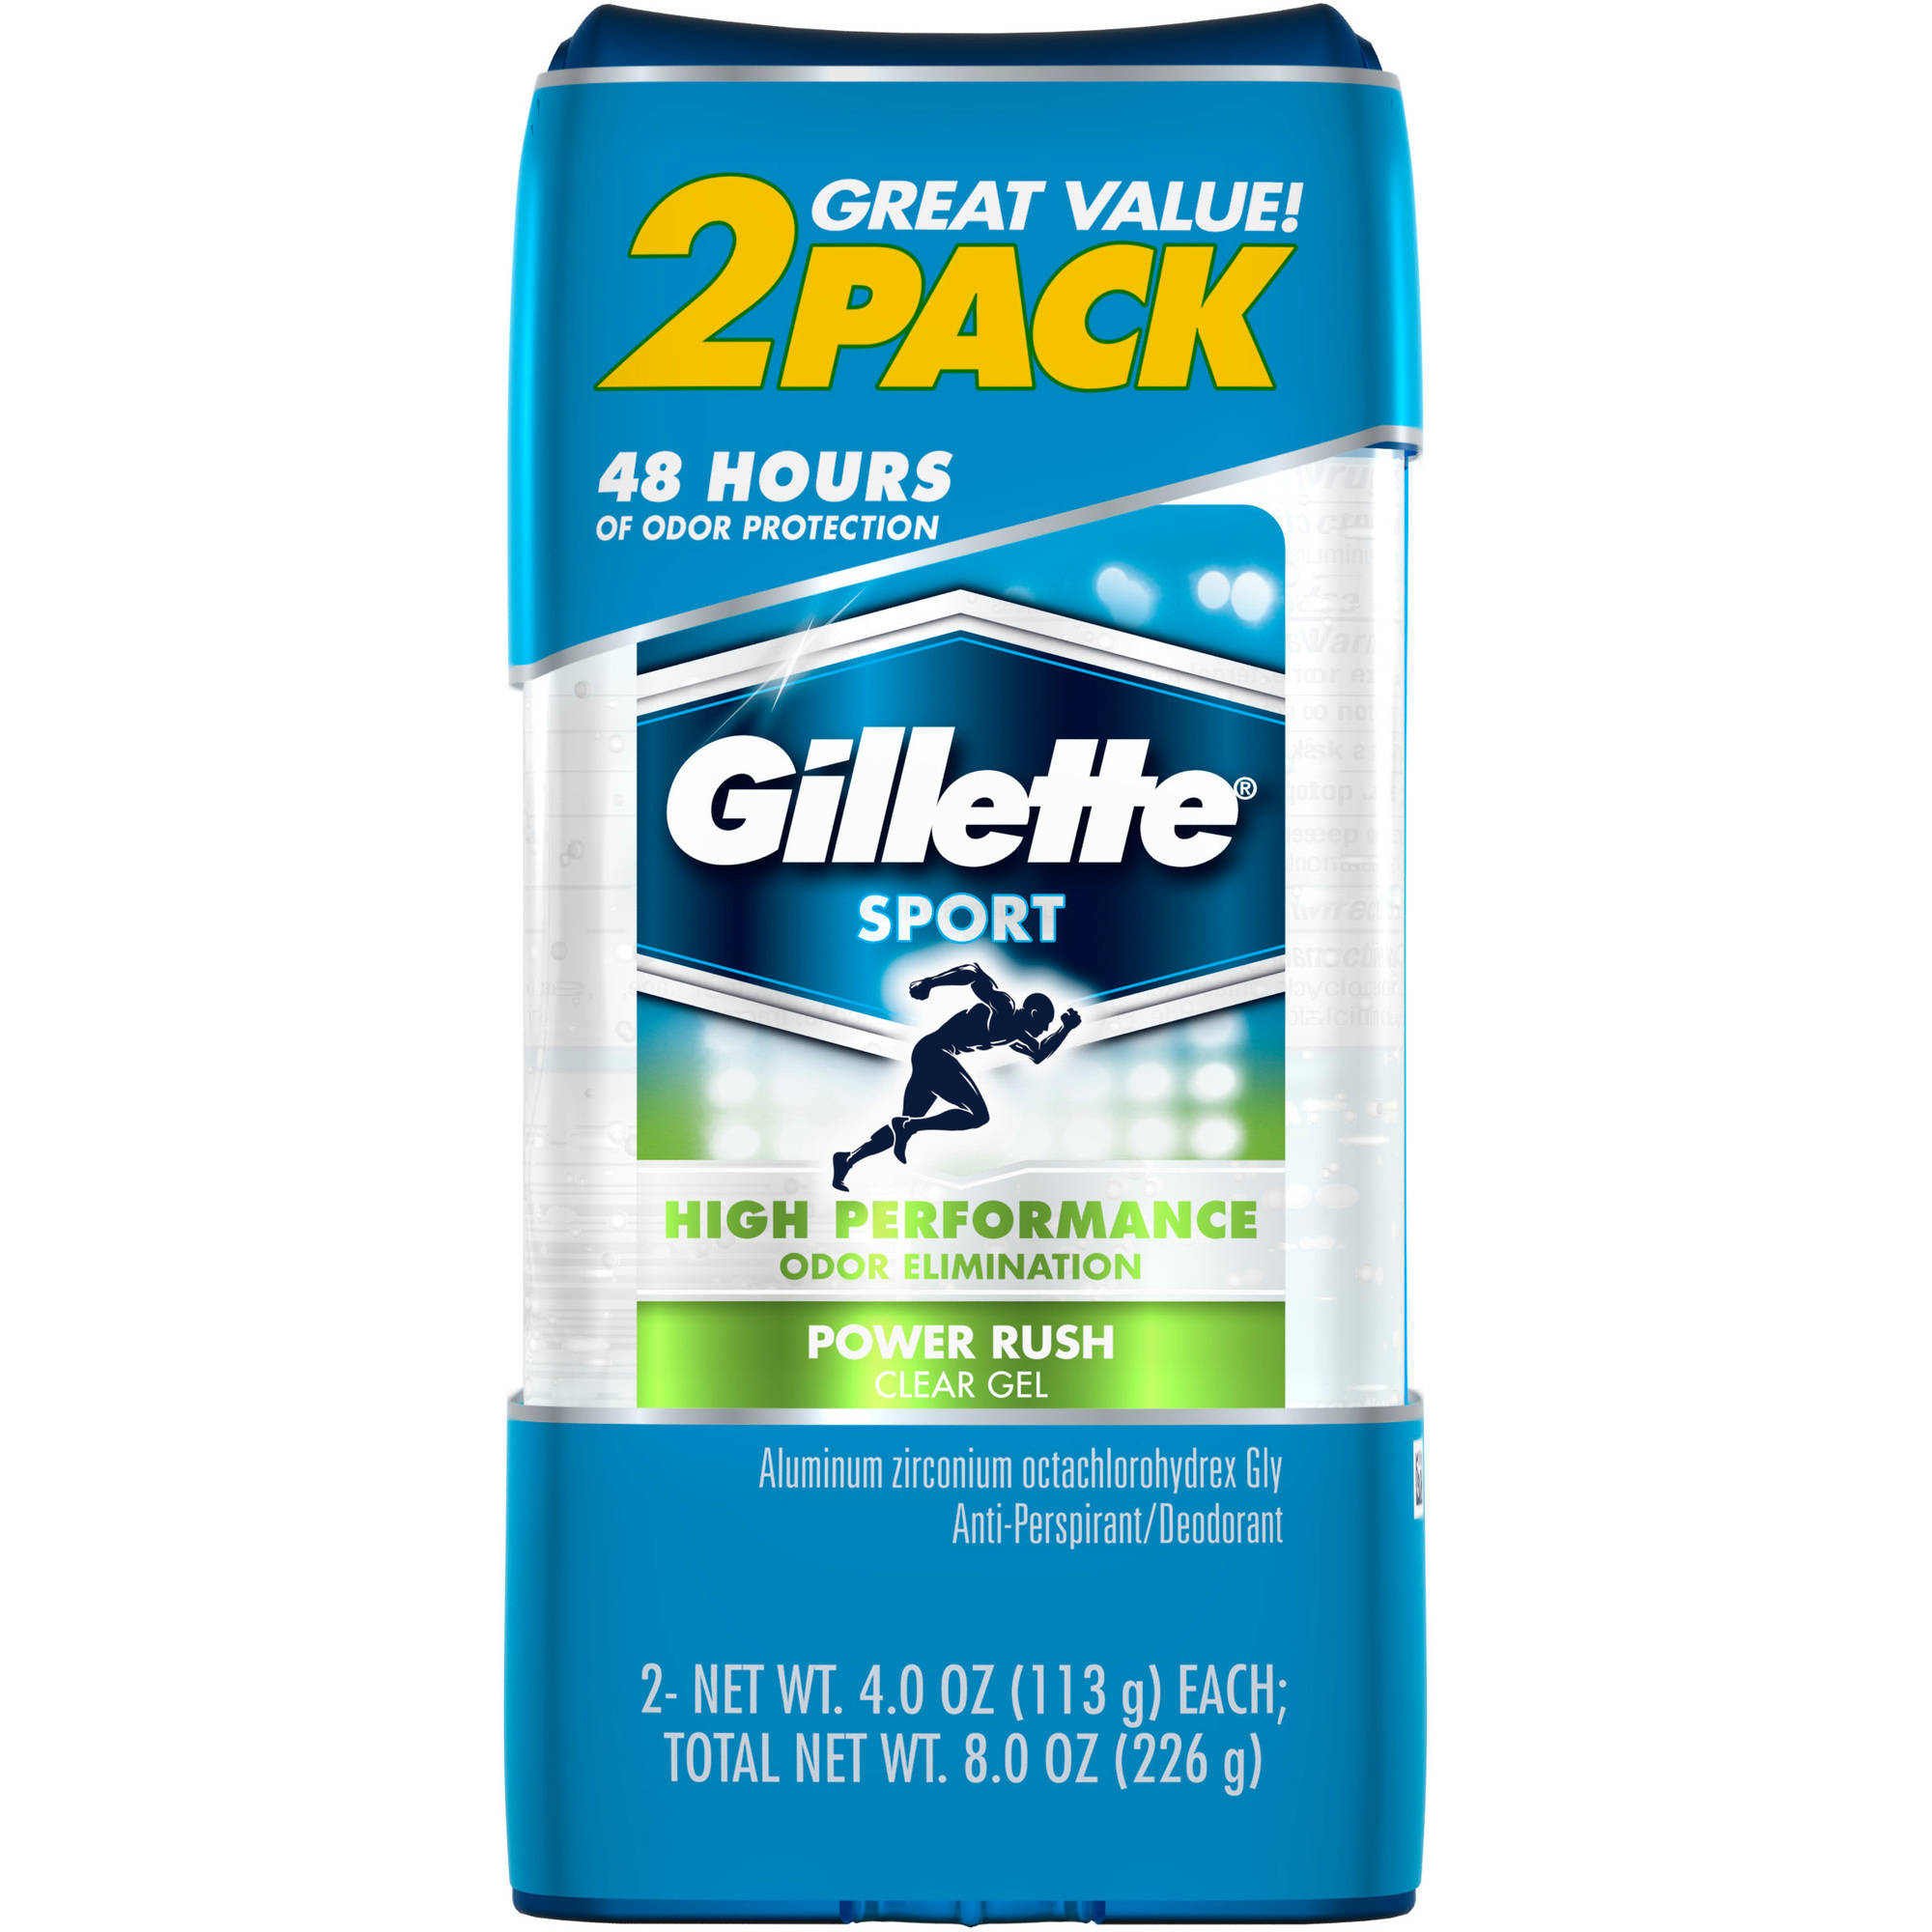 Gillette Power Rush Clear Gel Anti-Perspirant/Deodorant, 4 oz, 2 count